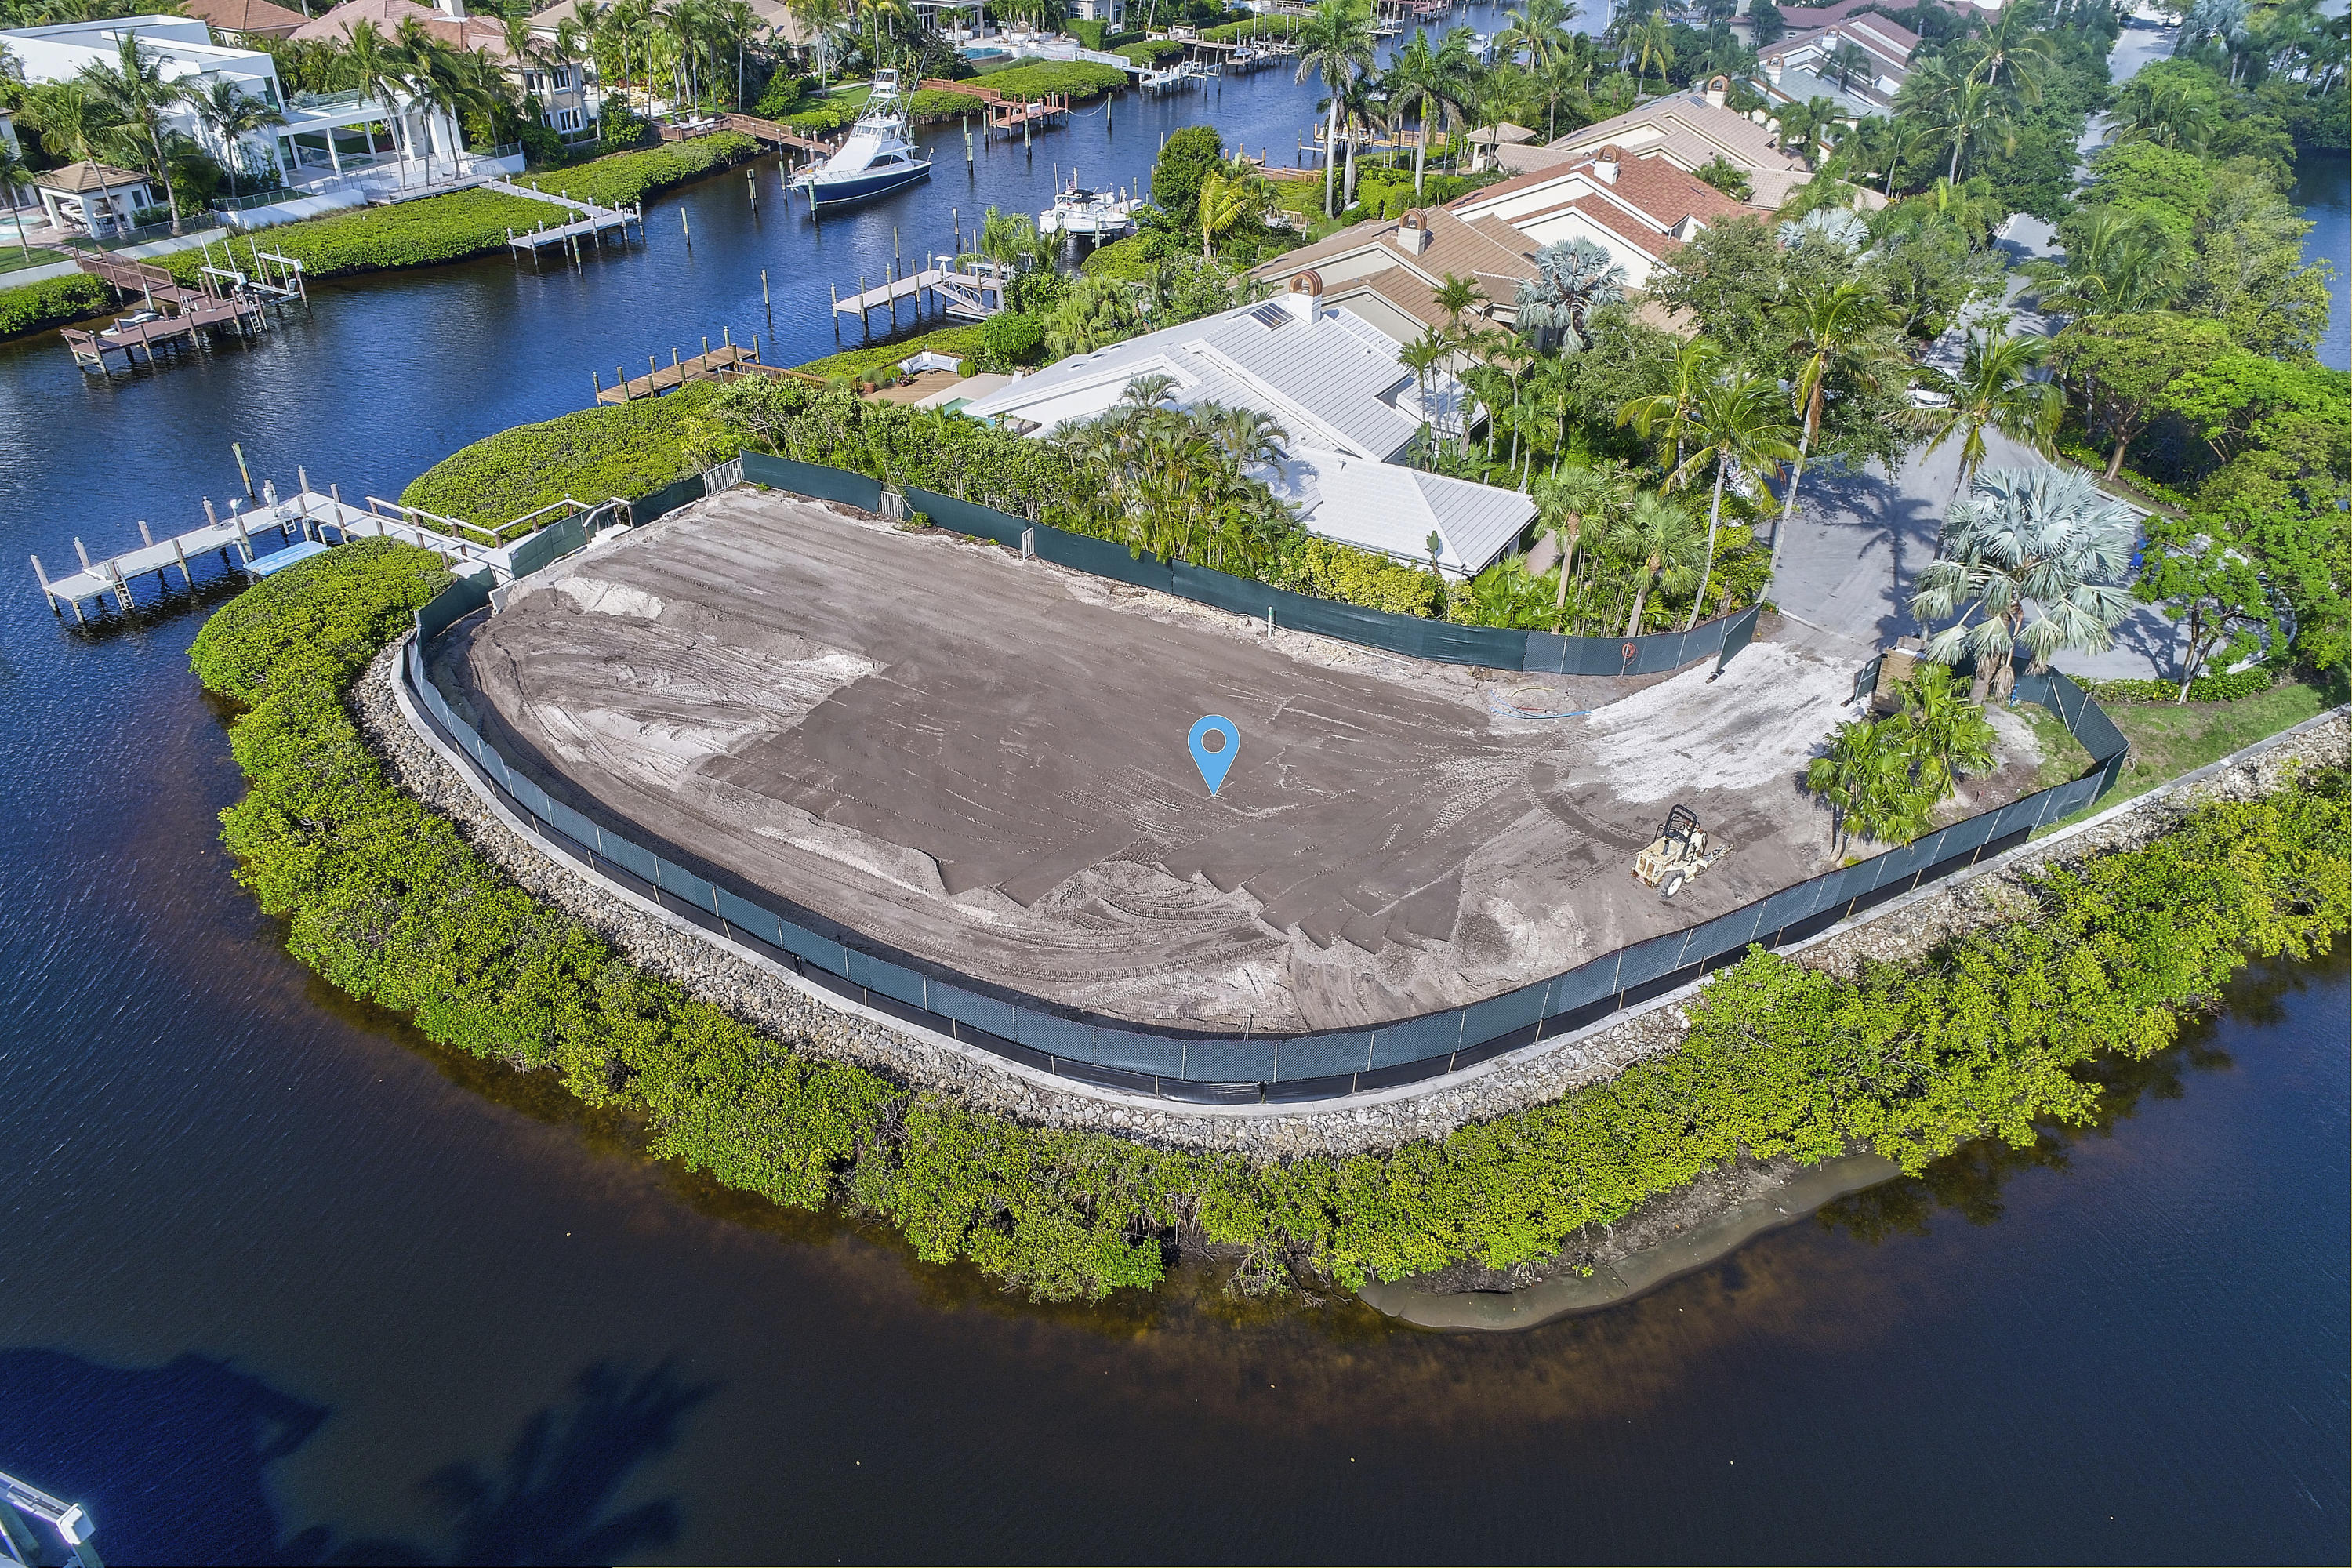 217 Island Drive, Jupiter, Florida 33477, 4 Bedrooms Bedrooms, ,4.1 BathroomsBathrooms,A,Single family,Island,RX-10354092